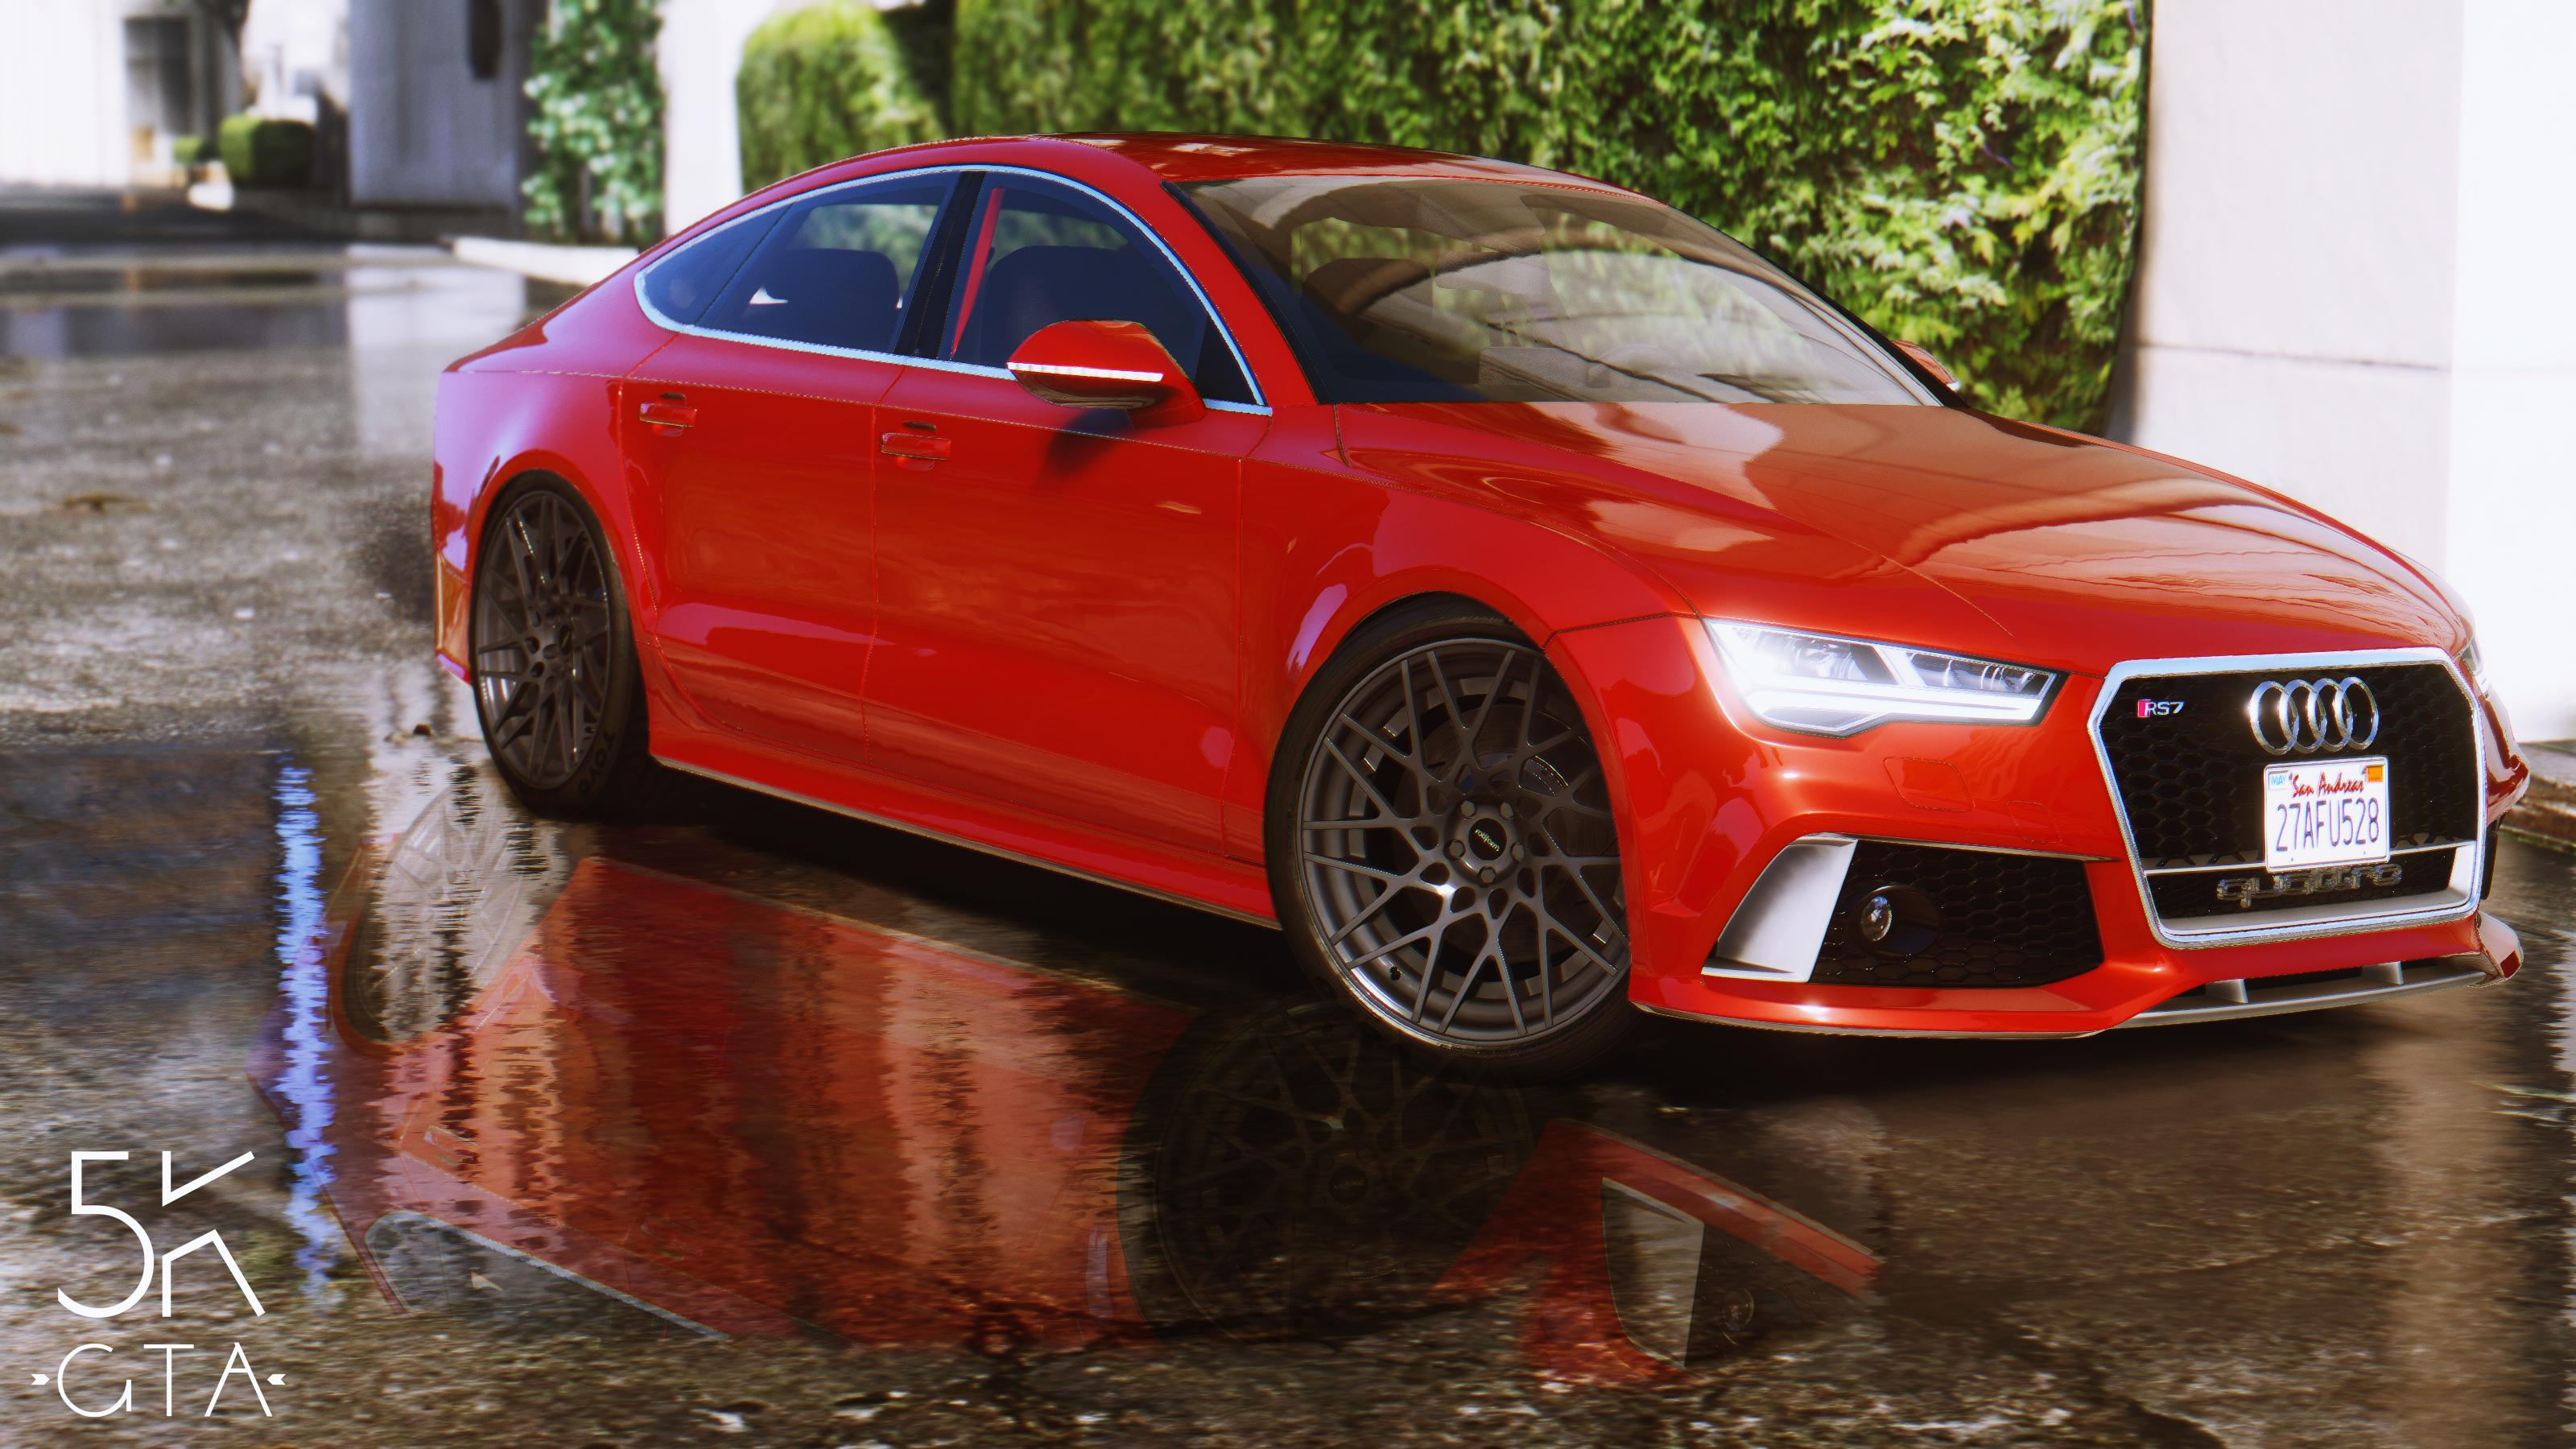 2015 Audi Rs7 Sportback Add On Replace 2017 With A Red Colour 8930f3 Pp6dvun